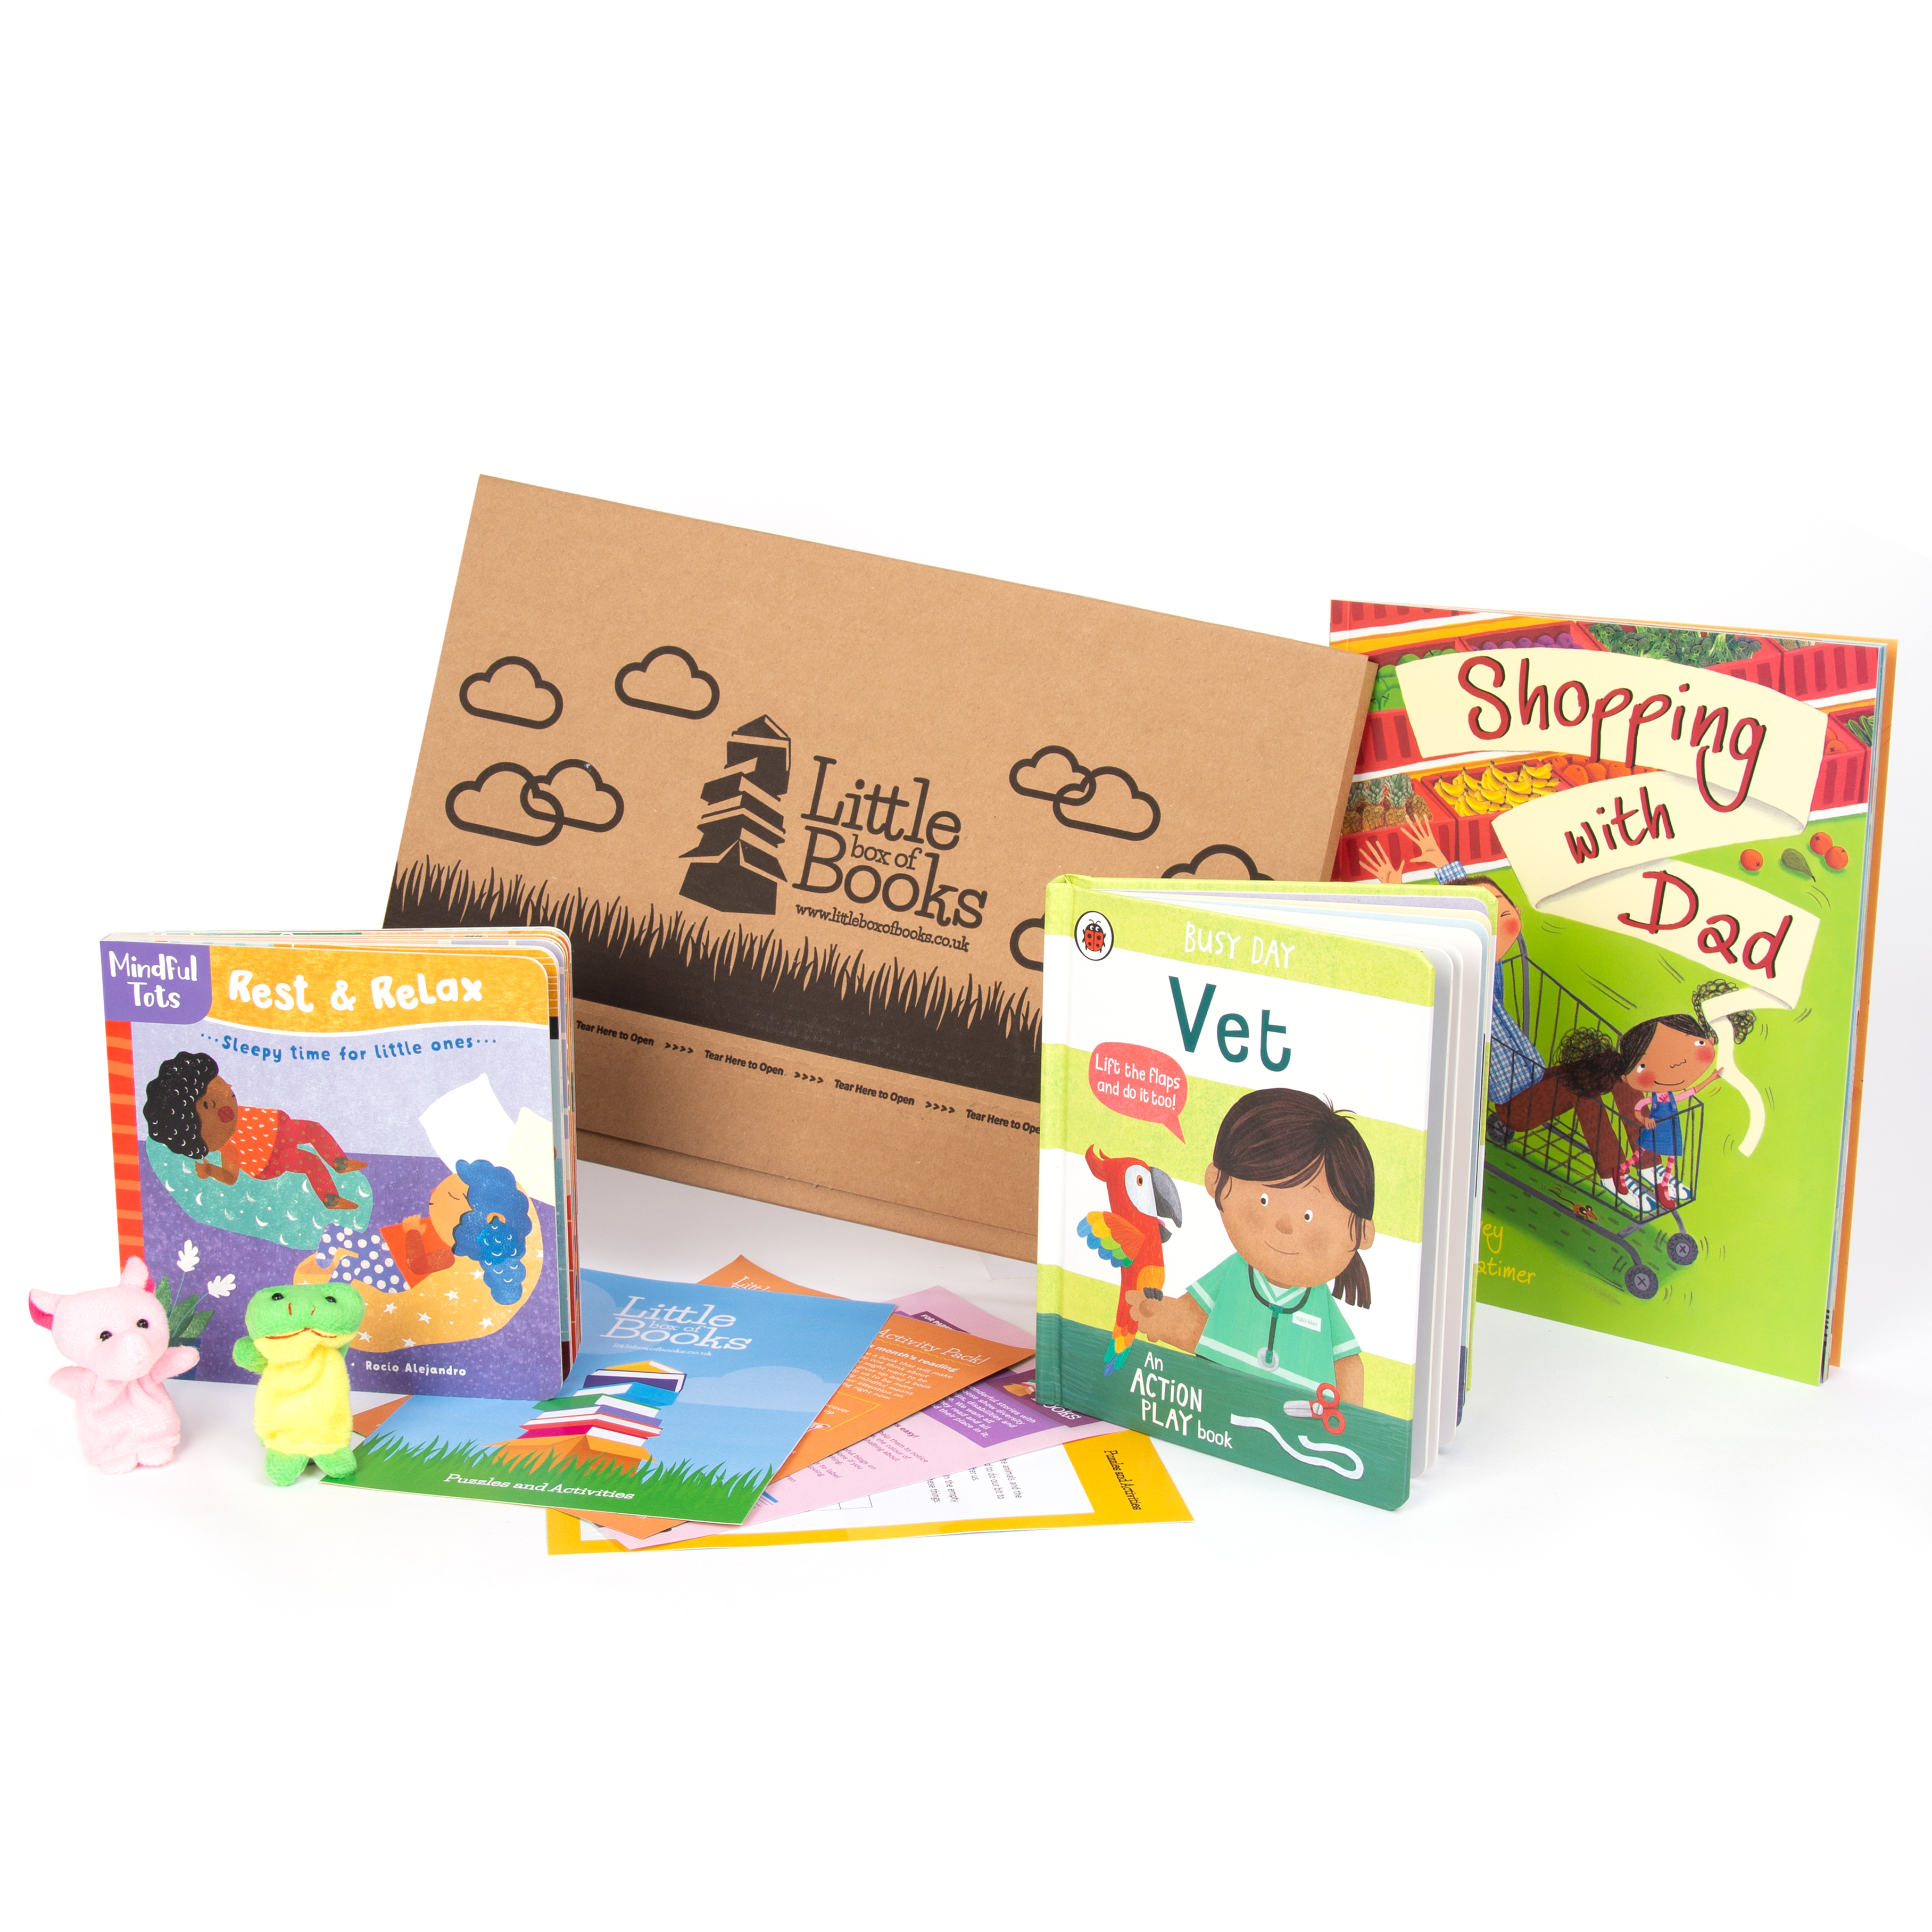 Inclusive and representative children's books from Little Box of Books., Buy from www.littleboxofbooks.co.uk